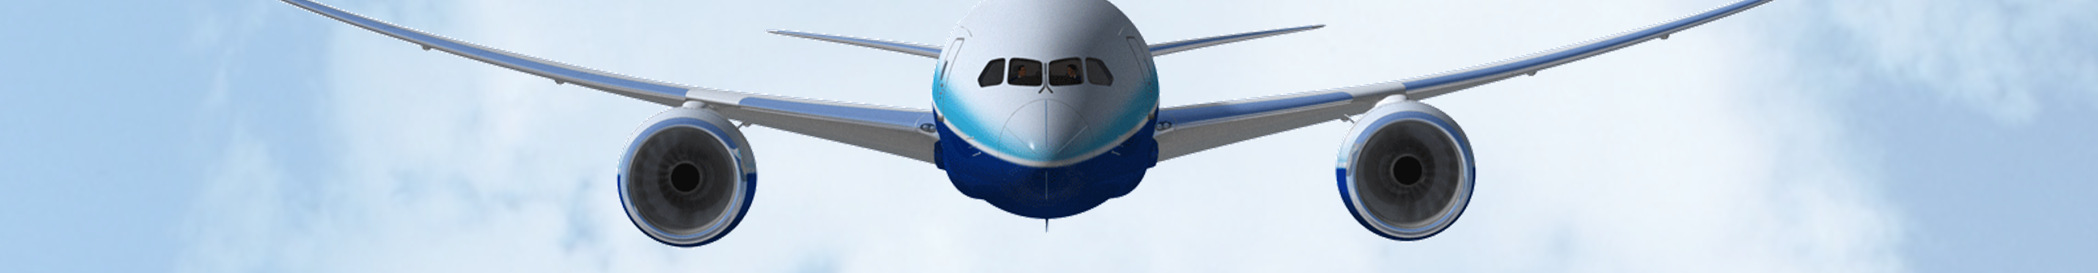 787 Designed for Lower Operating Cost and